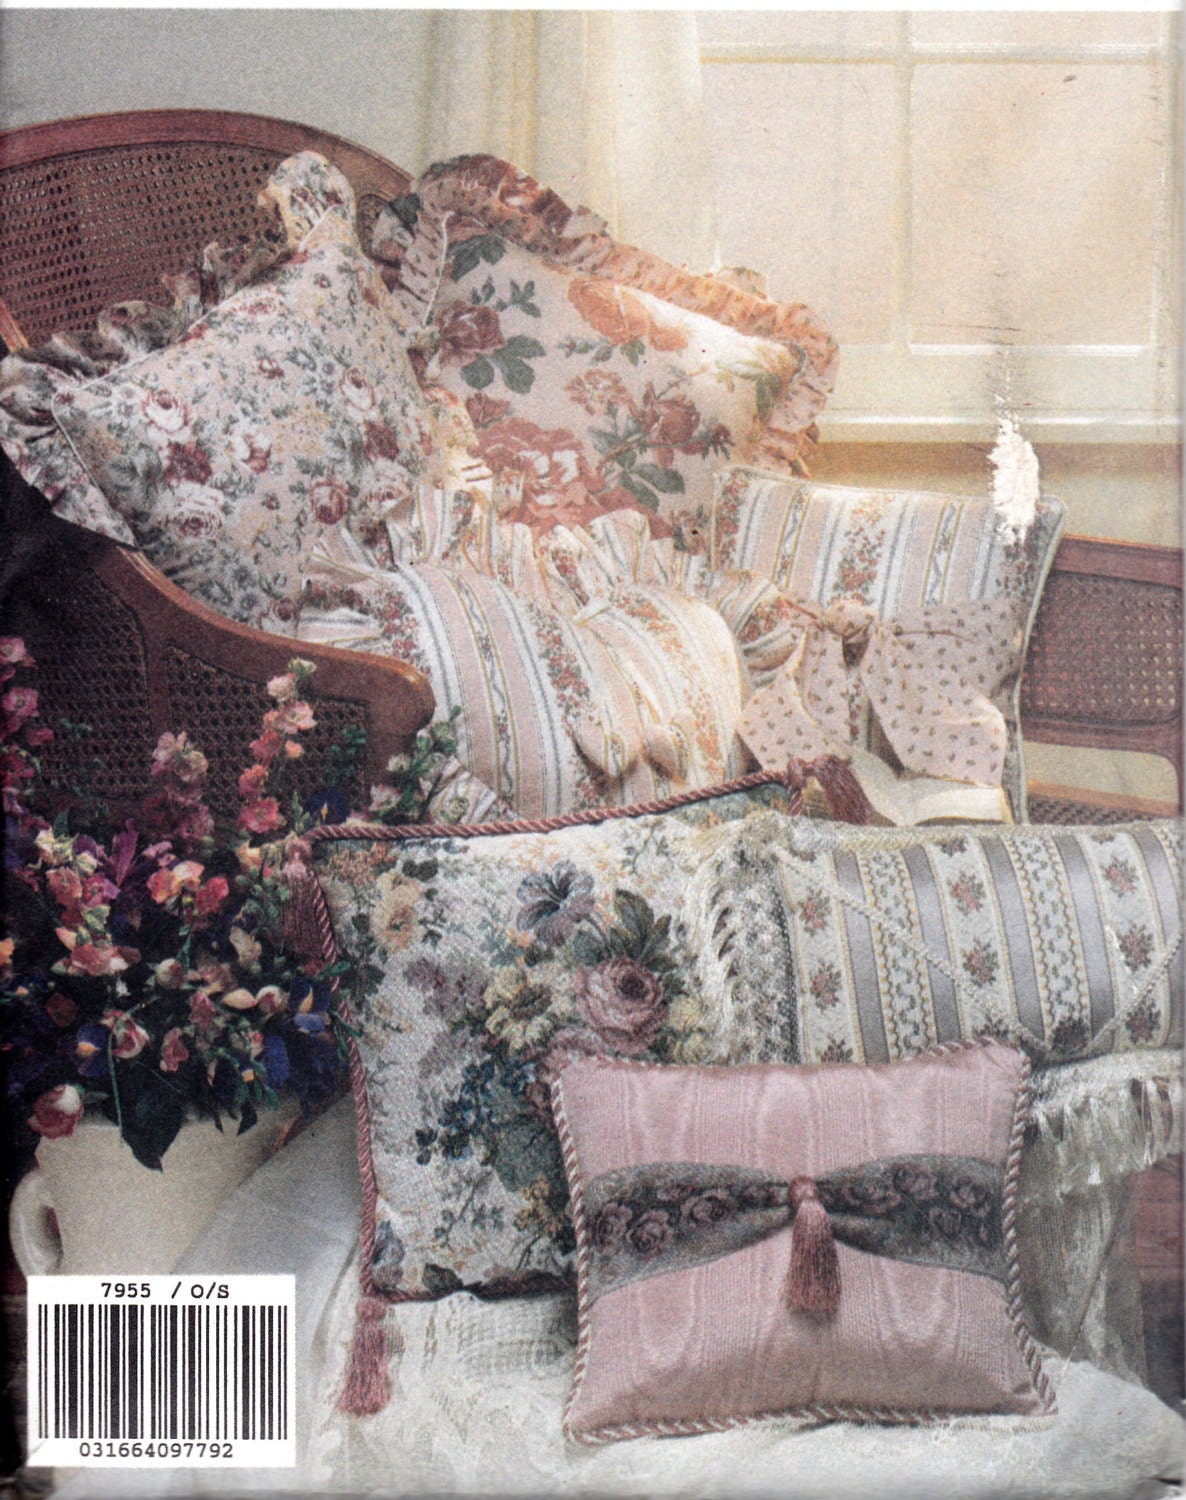 Craft sewing pattern 1990 39 s pillows home decor vogue 7955 for Home decor 1990s